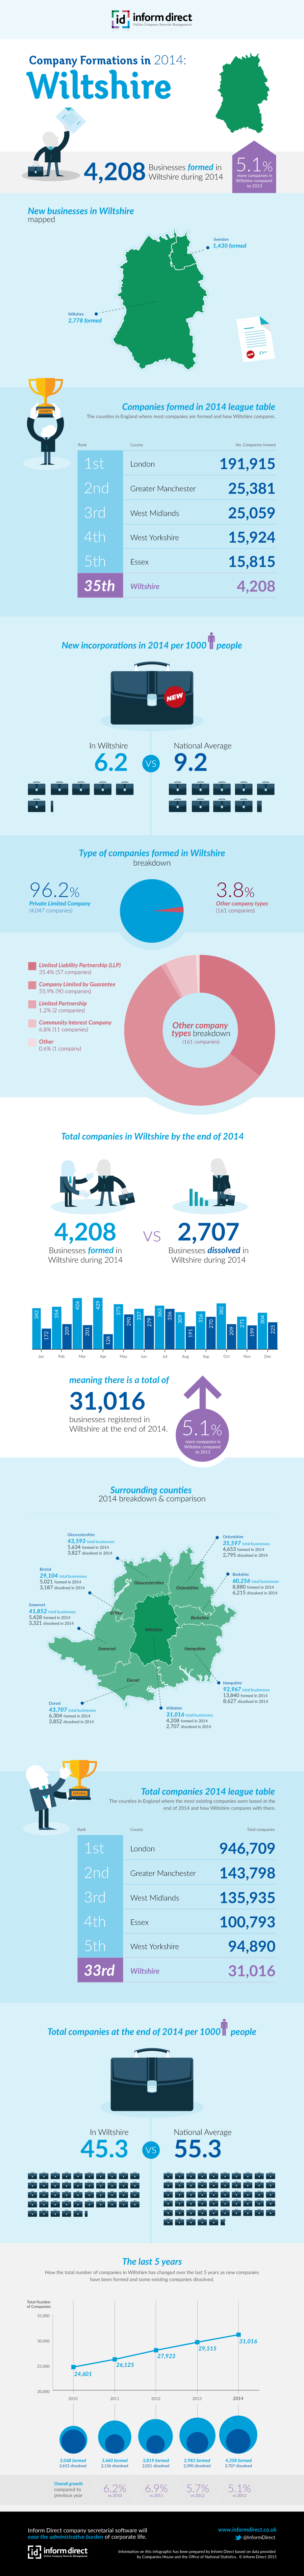 Inform Direct - Company Formations in Wiltshire 2014 Infographic